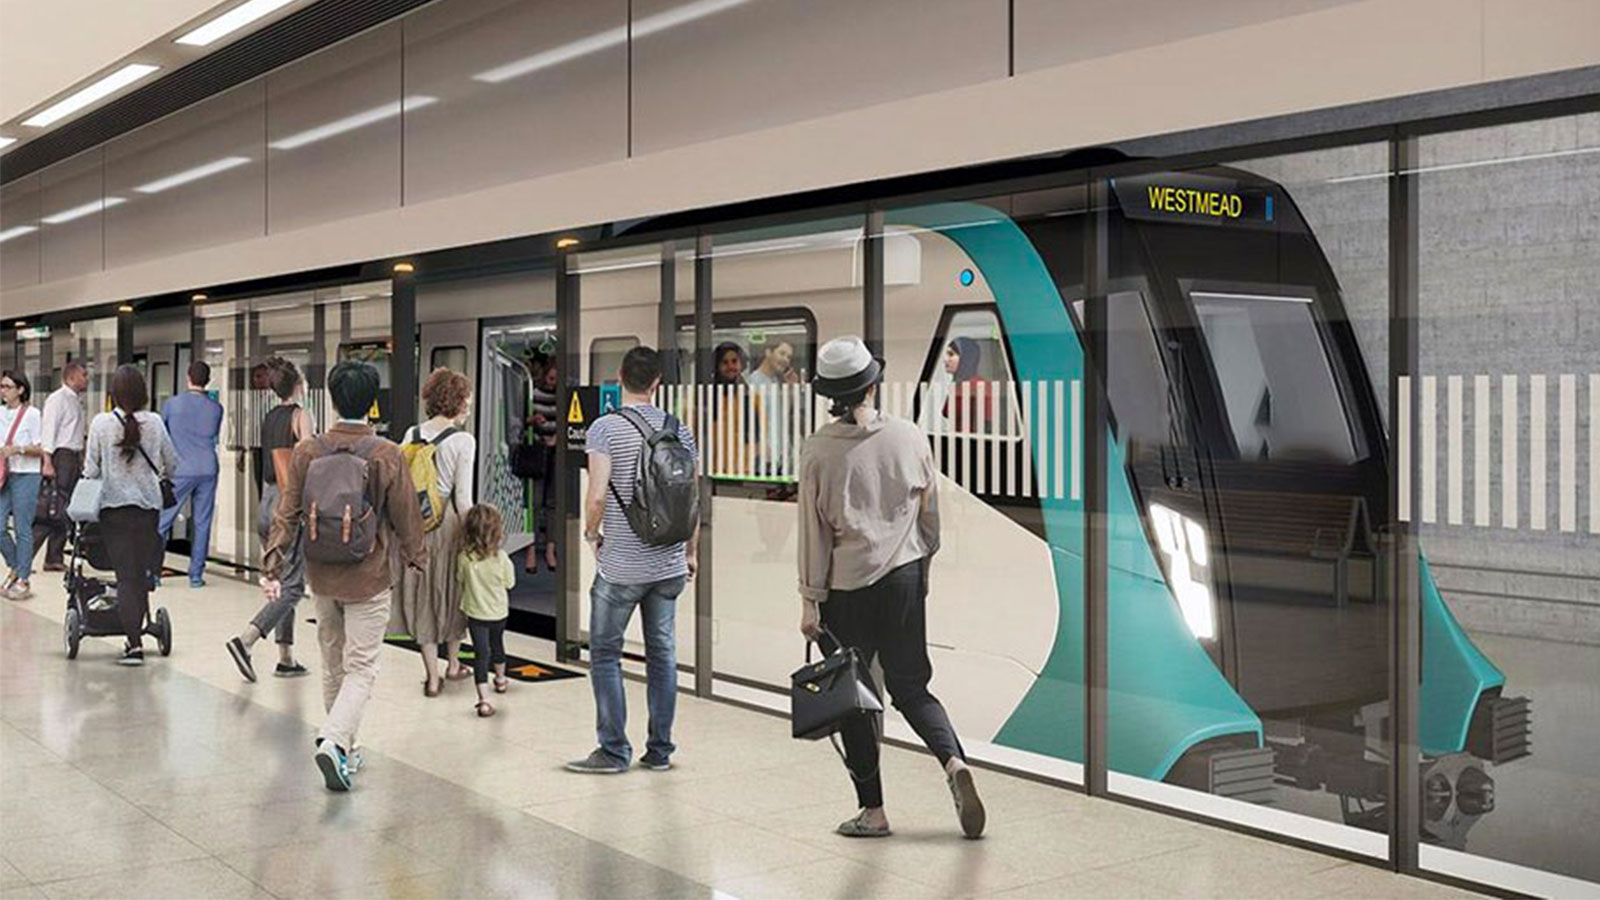 ▲ Adding the impetus to Parramatta as an emerging office market is the planned Western Sydney Metro rail line that will connect it to the Sydney CBD by a 20-minute train ride.